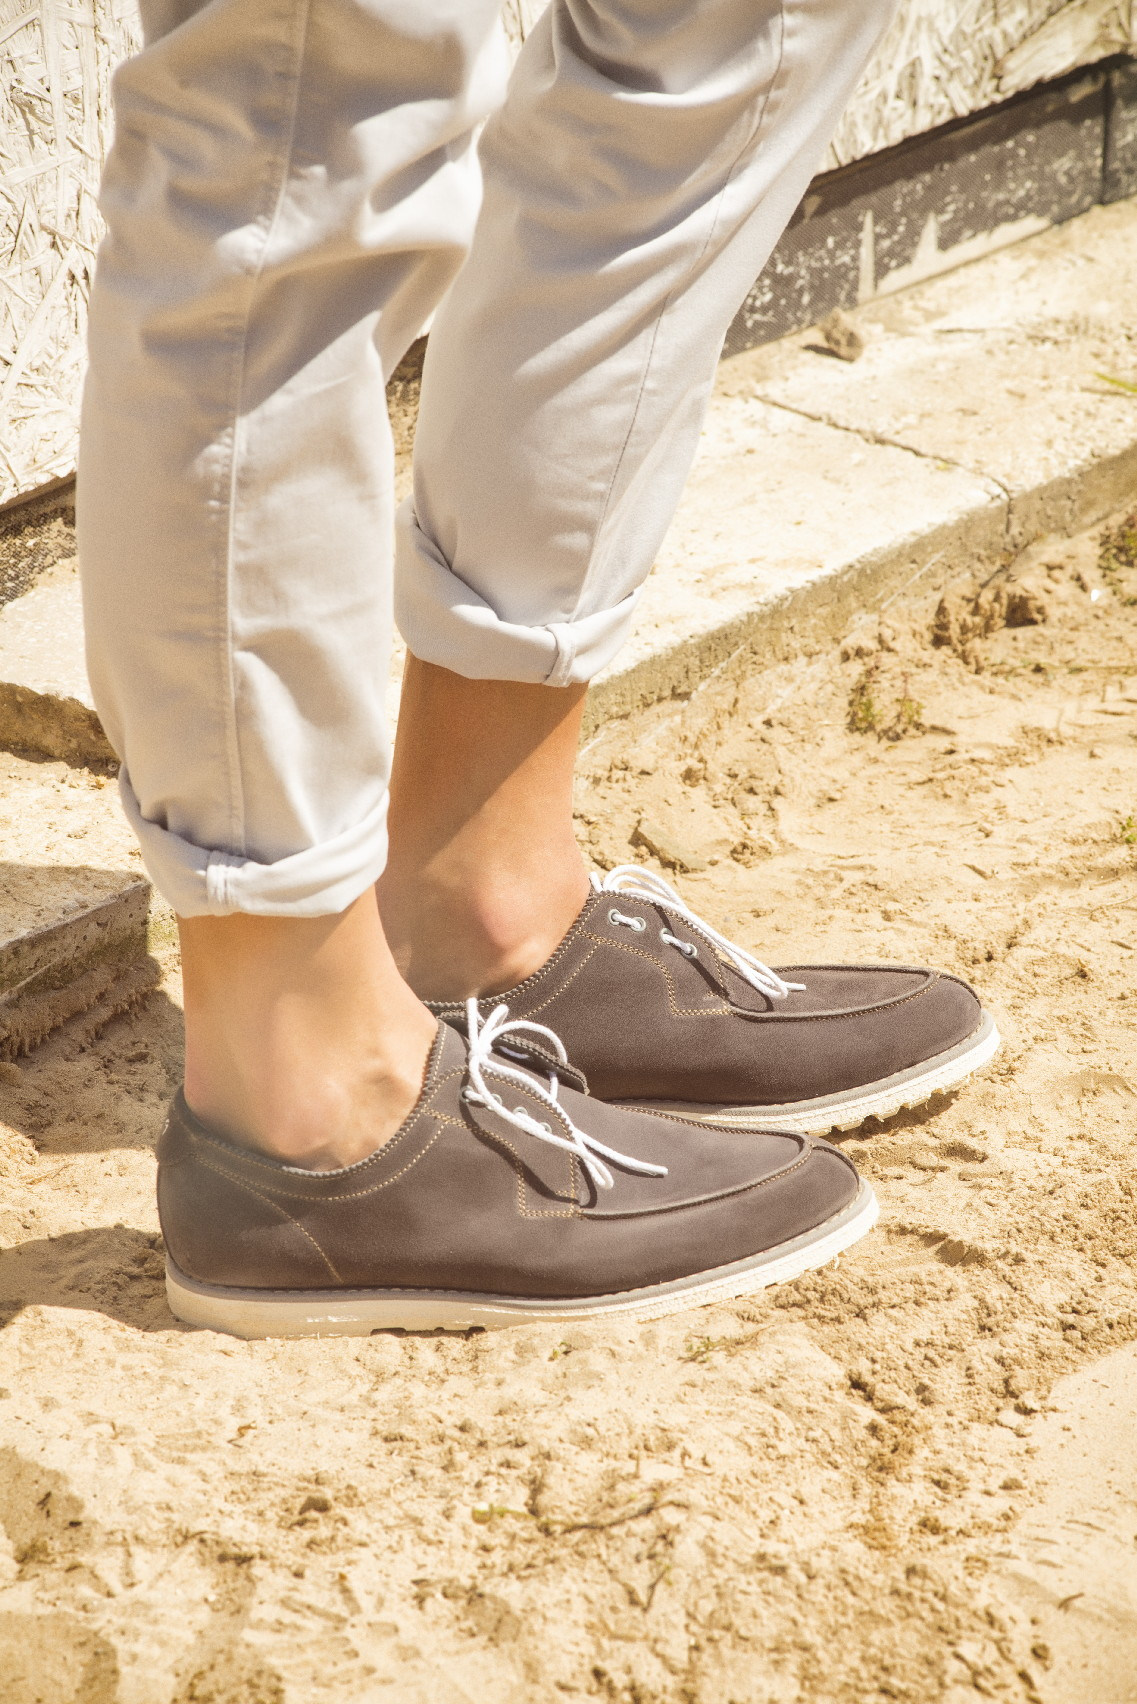 Suede shoes: how to choose, wear and clean them